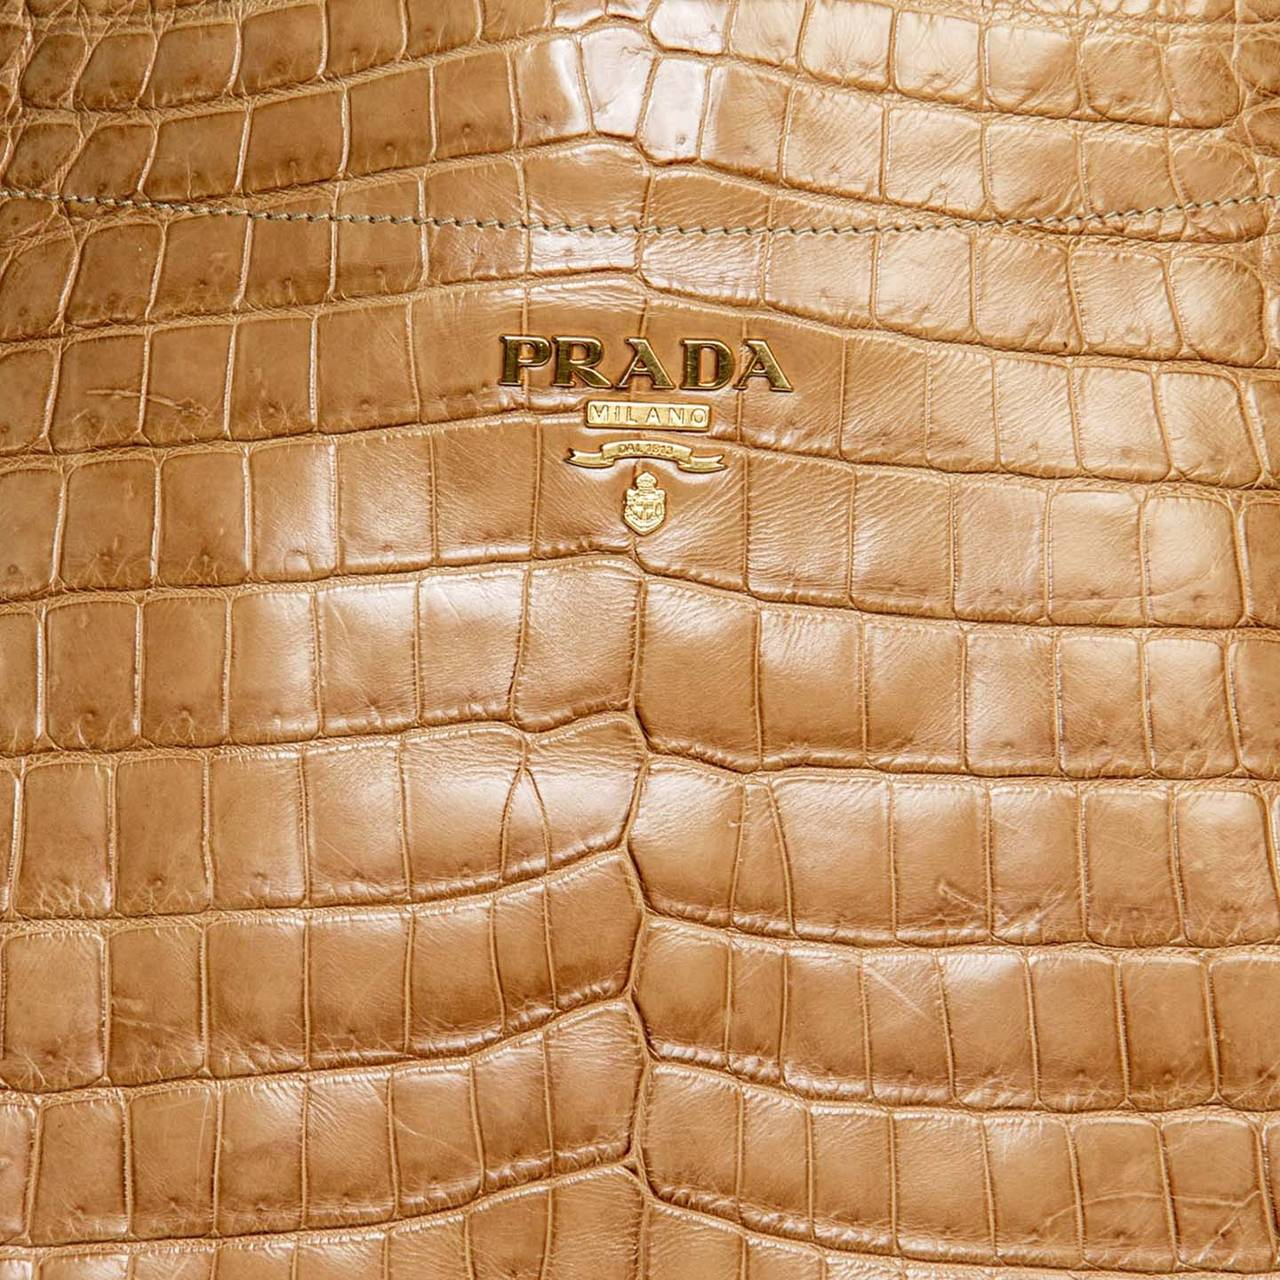 prada crocodile bag